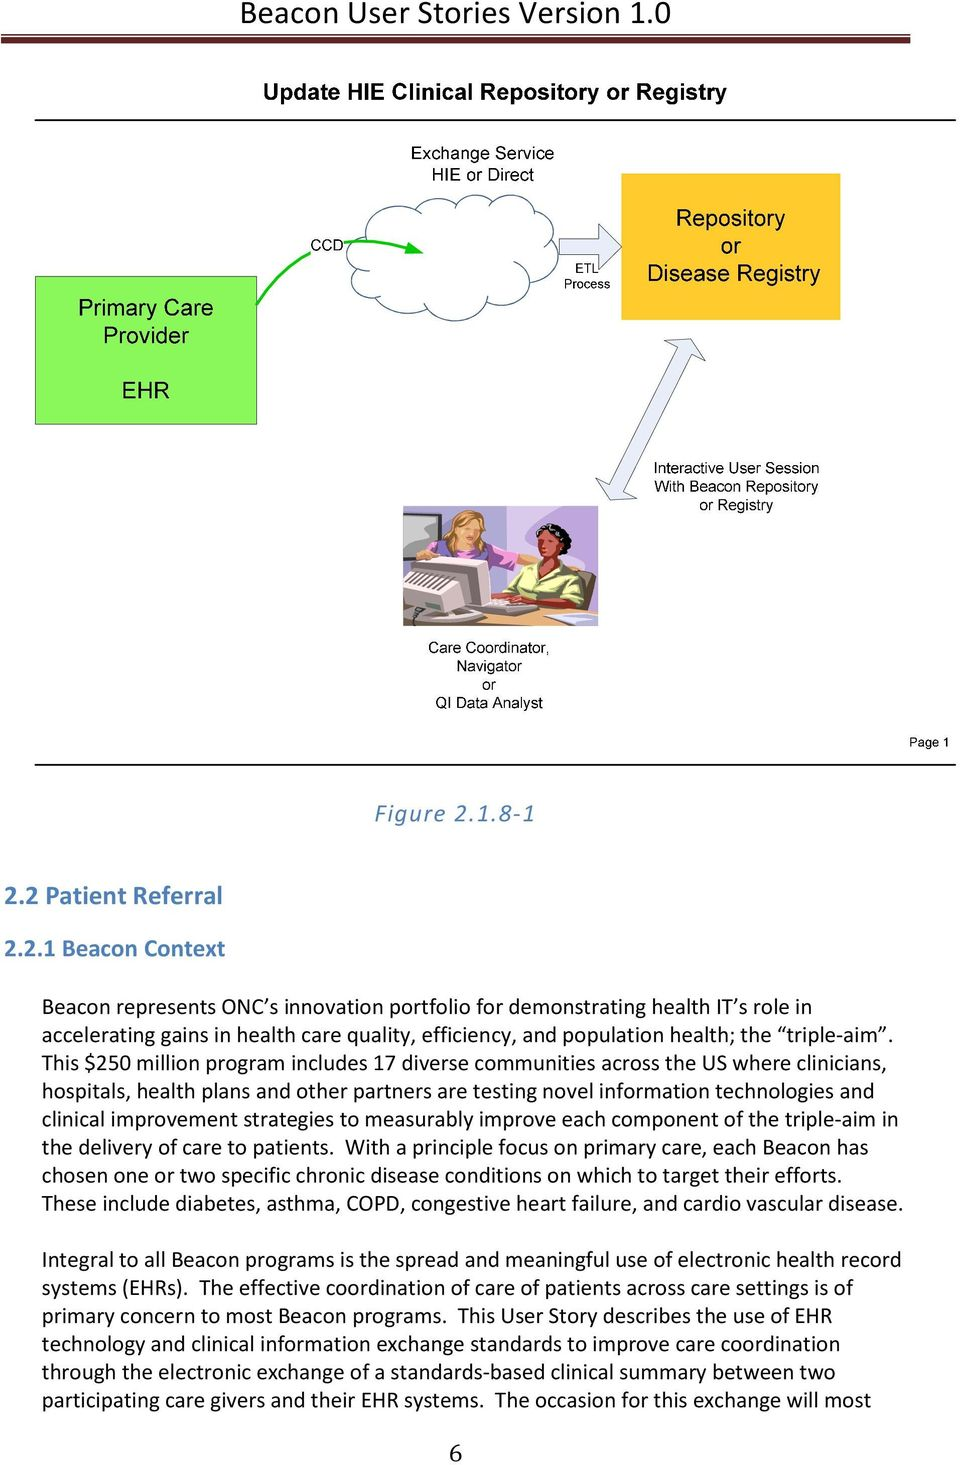 2 Patient Referral 2.2.1 Beacon Context Beacon represents ONC s innovation portfolio for demonstrating health IT s role in accelerating gains in health care quality, efficiency, and population health; the triple-aim.